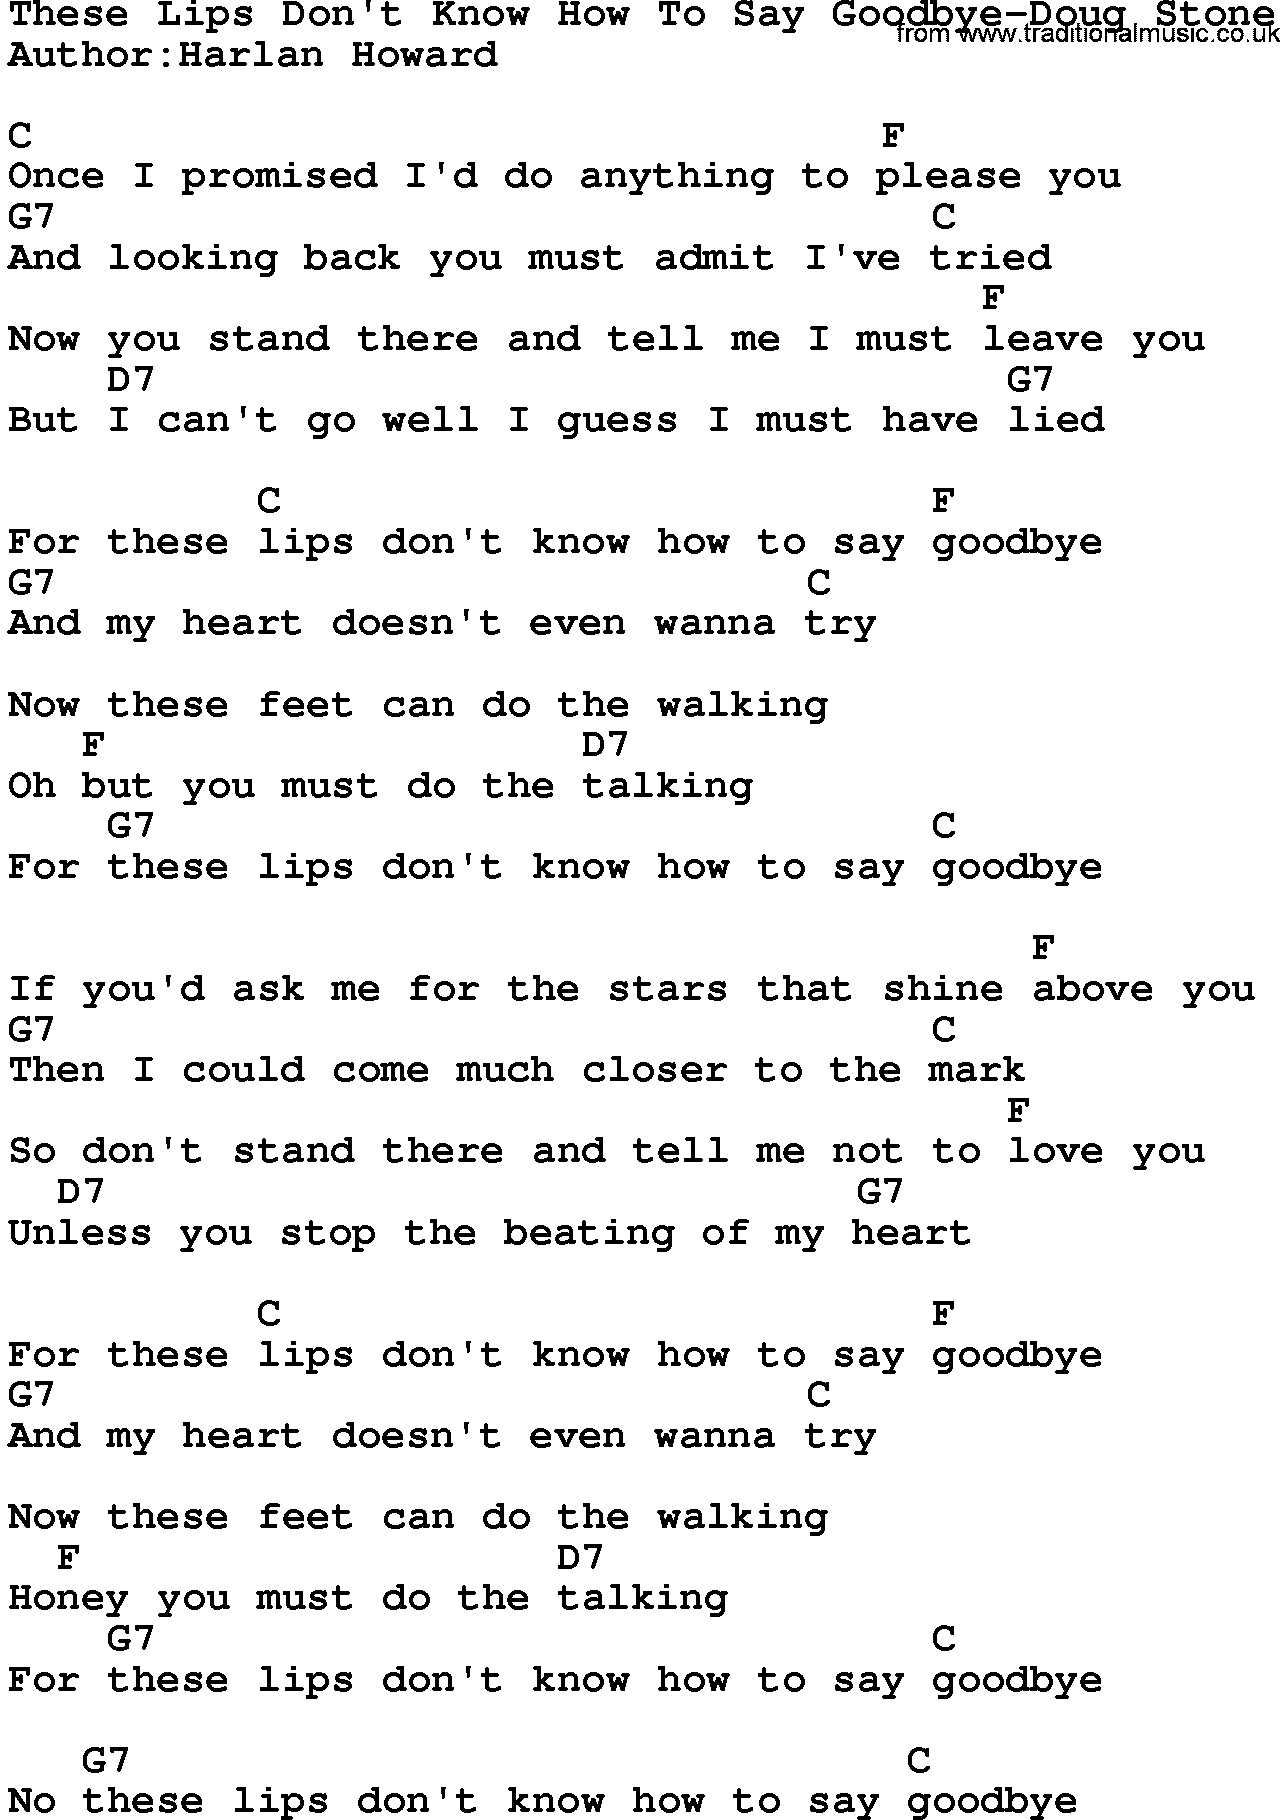 Country Musicthese Lips Dont Know How To Say Goodbye Doug Stone